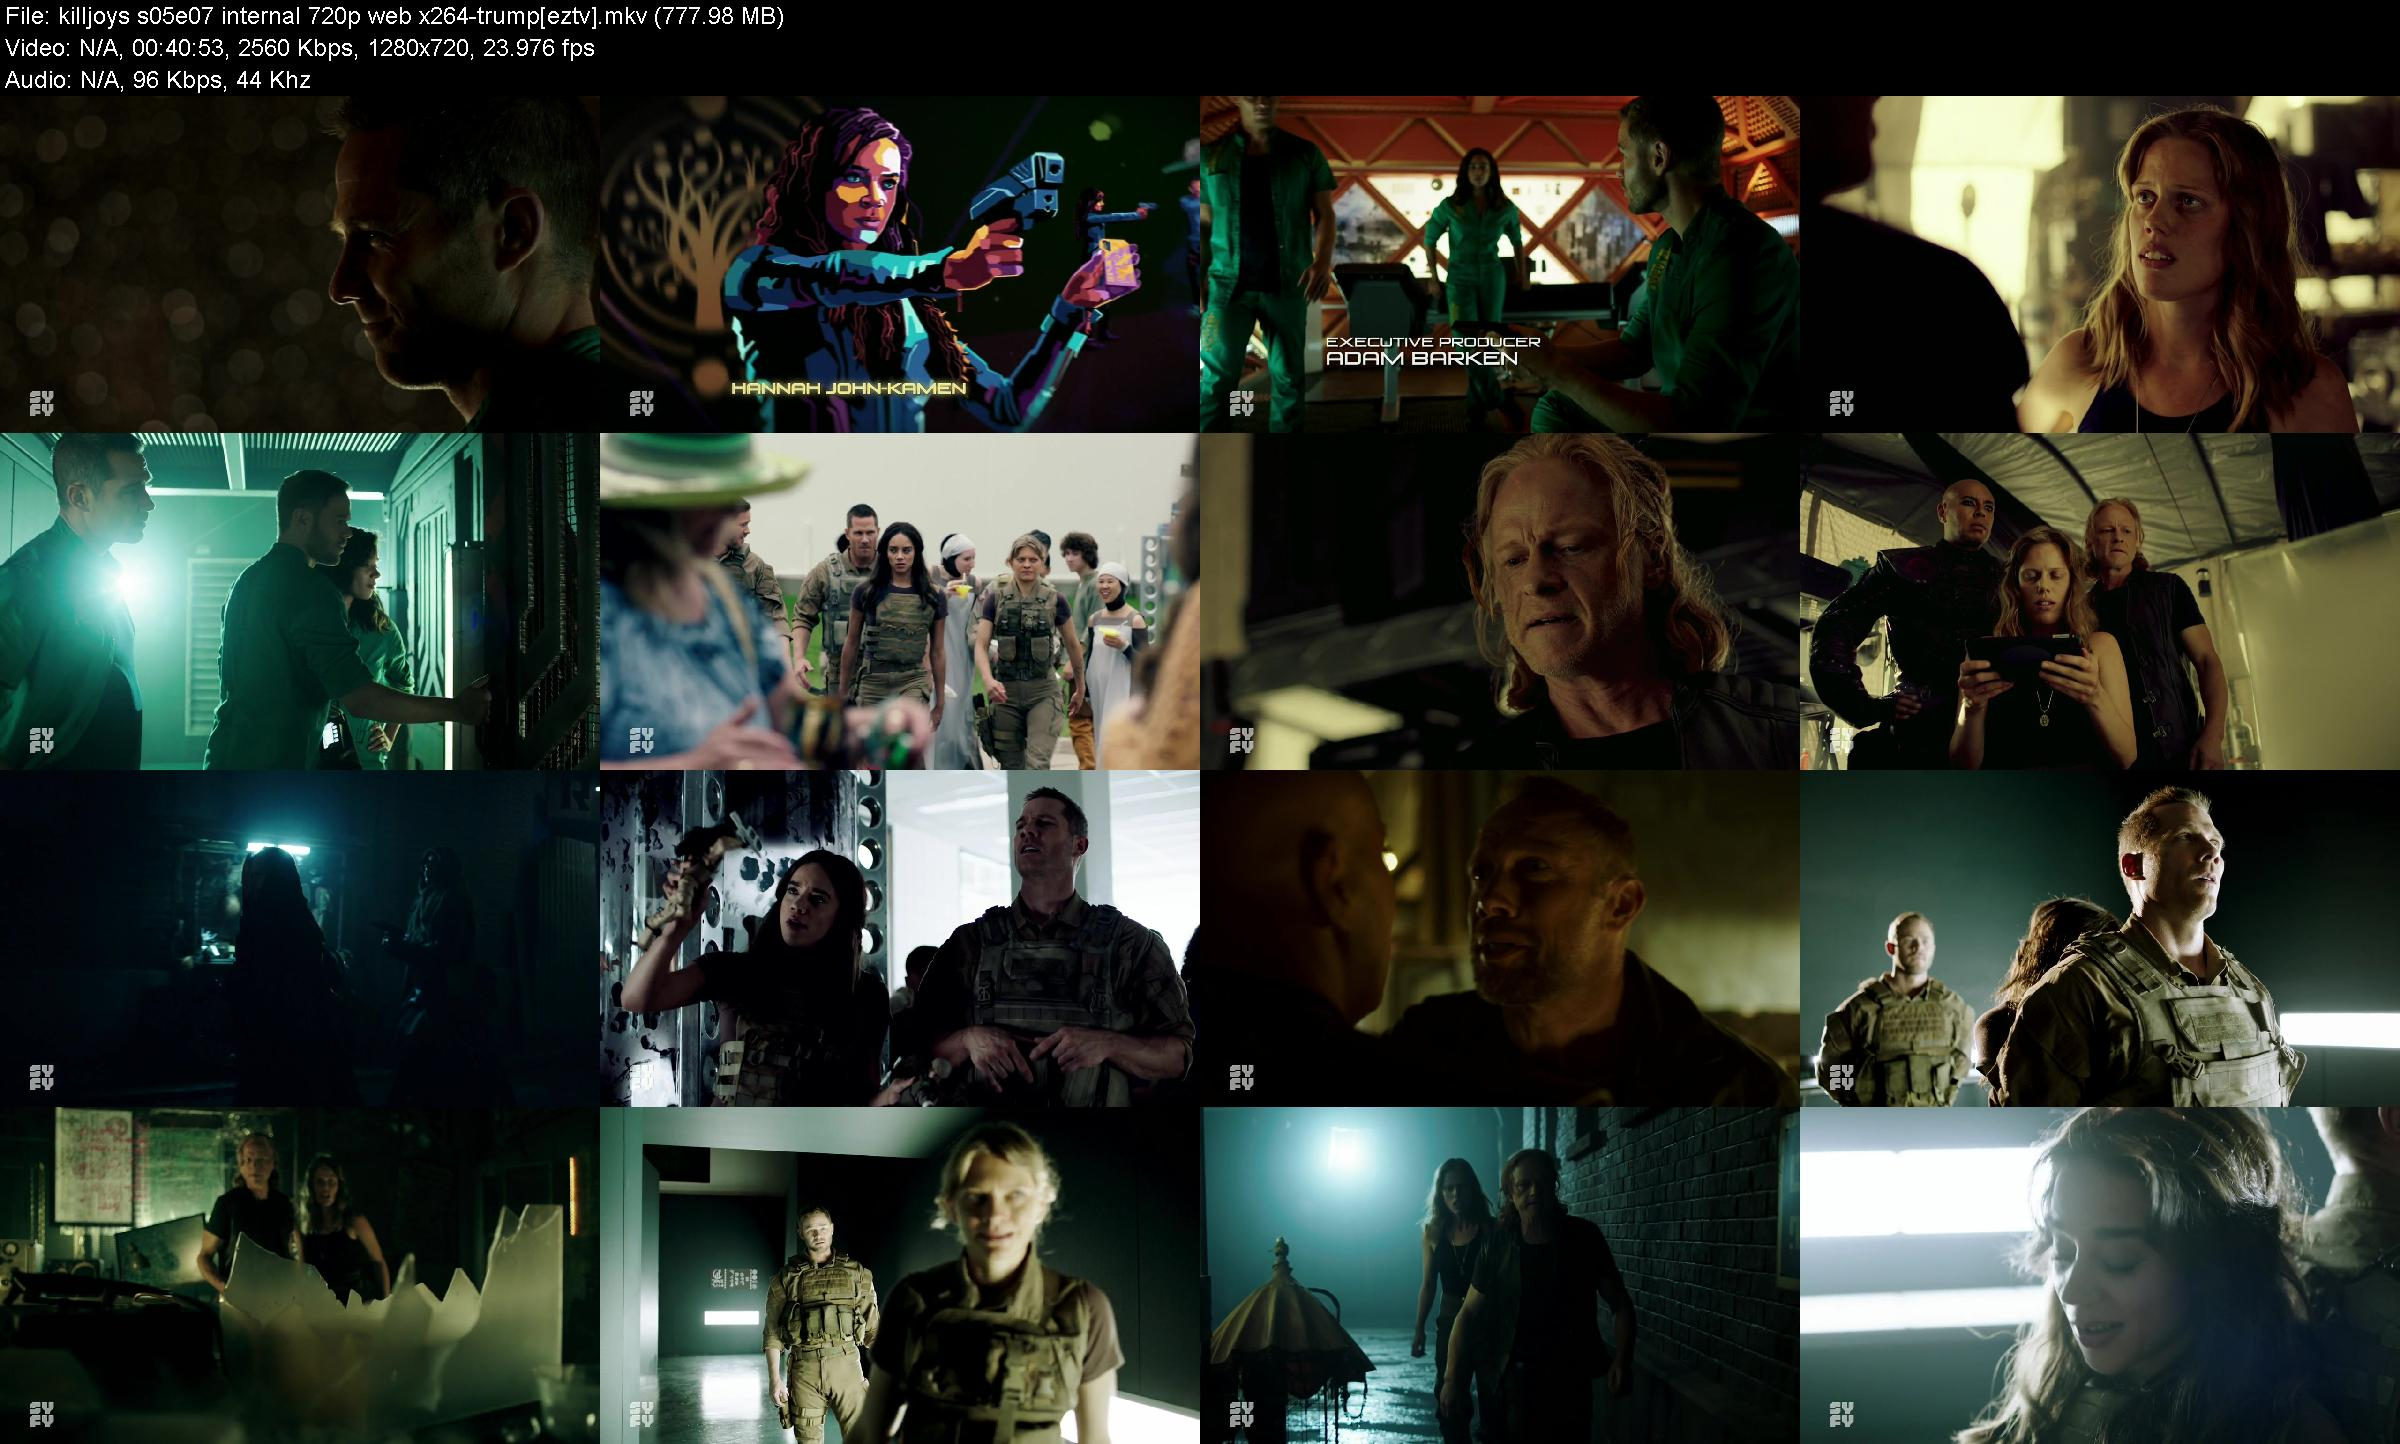 killjoys s05e07 internal 720p web x264-trump